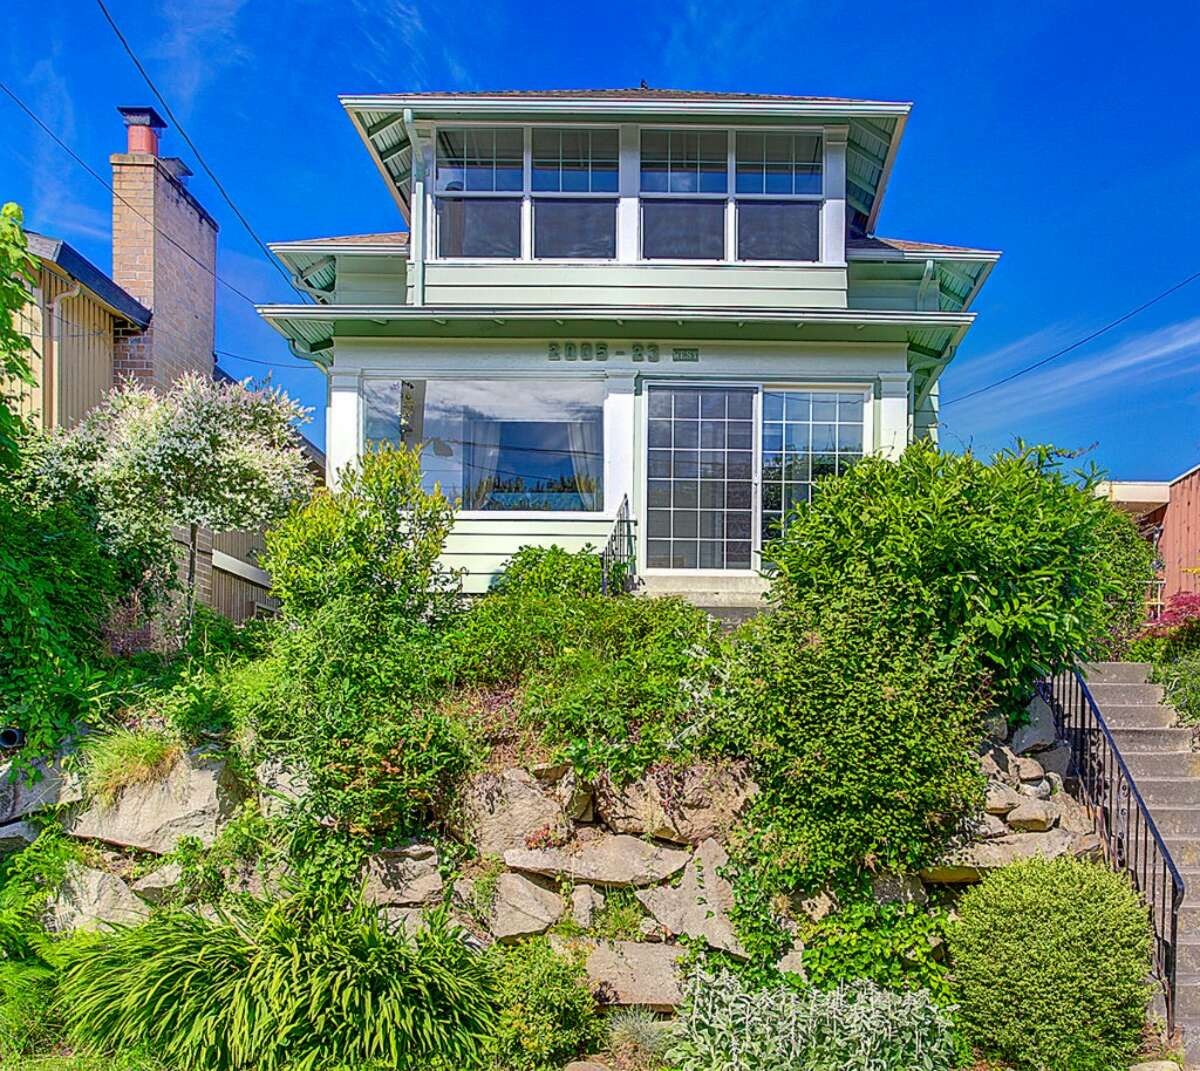 Magnolia is almost like a separate city not far from Downtown Seattle, Elliott Bay, the Ship Canal and Puget Sound. Here are three homes listed there for $550,000 to $589,000, starting with the priciest, 2005 23rd Ave. W. The 2,810-square-foot house, built in 1909, has four bedrooms, 2.25 bathrooms, an enclosed front porch, high ceilings, radiators, a basement family room, a back deck and a patio on a 3,675-square-foot lot.